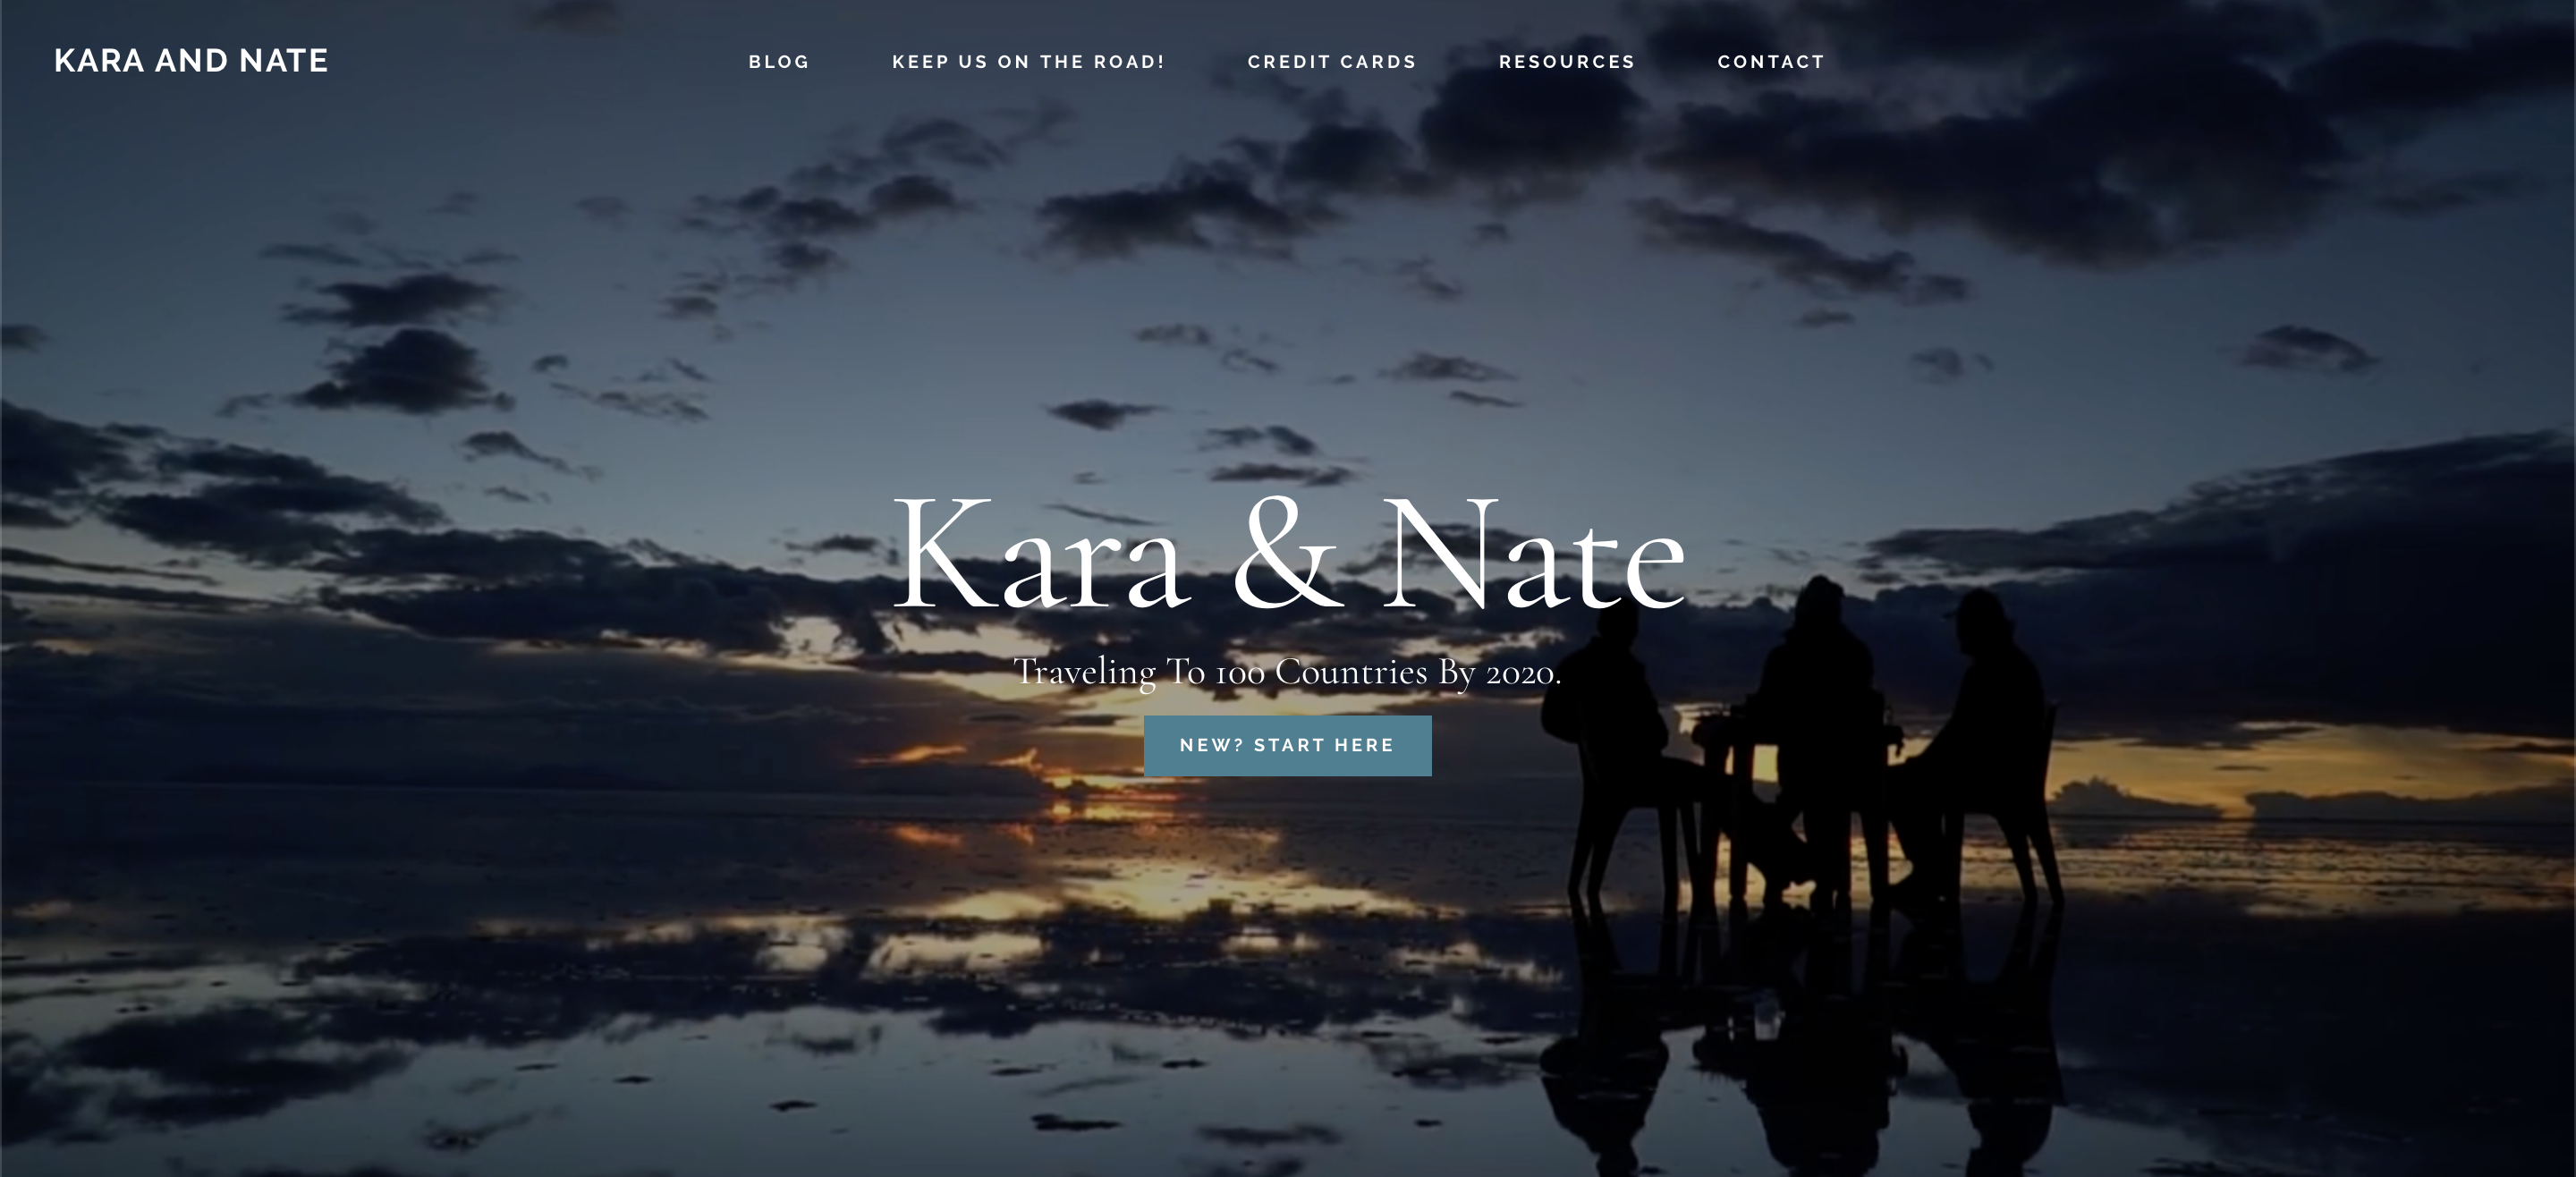 kara and nate website